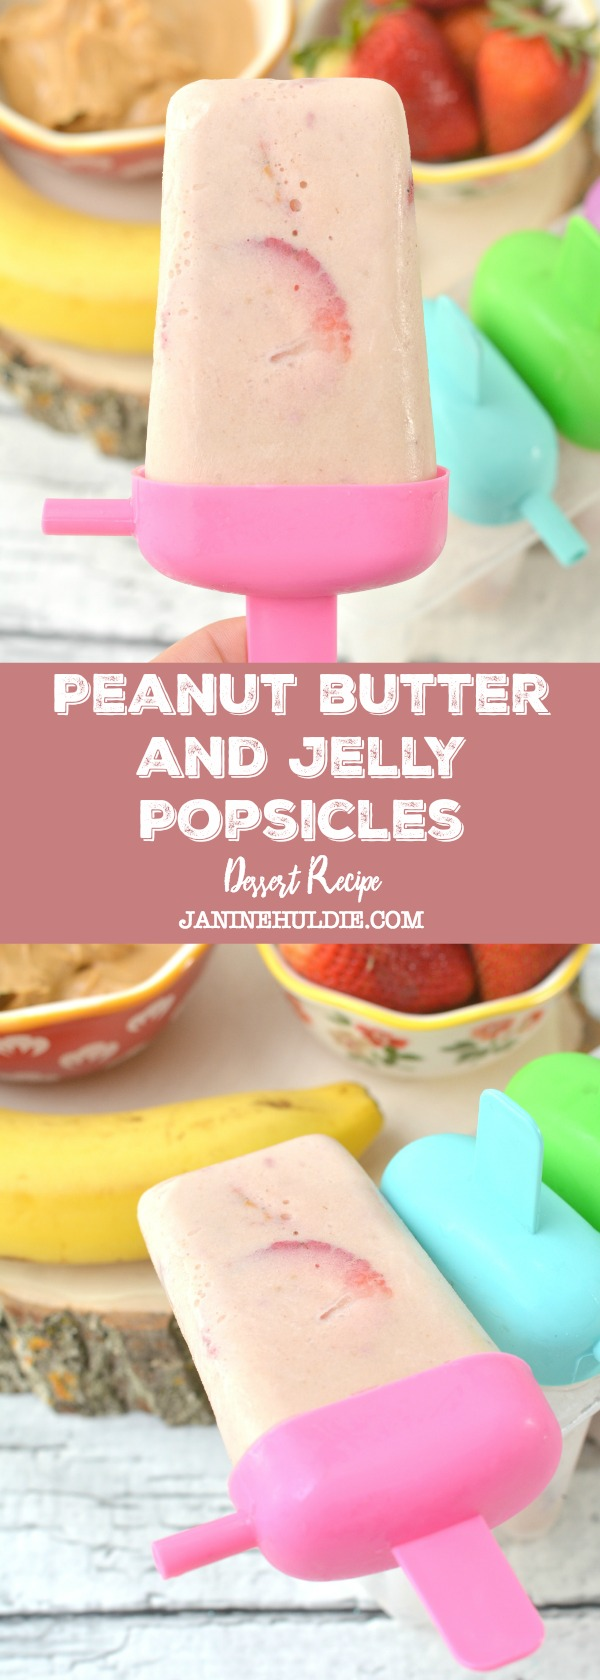 Peanut Butter and Jelly Popsicles Recipe